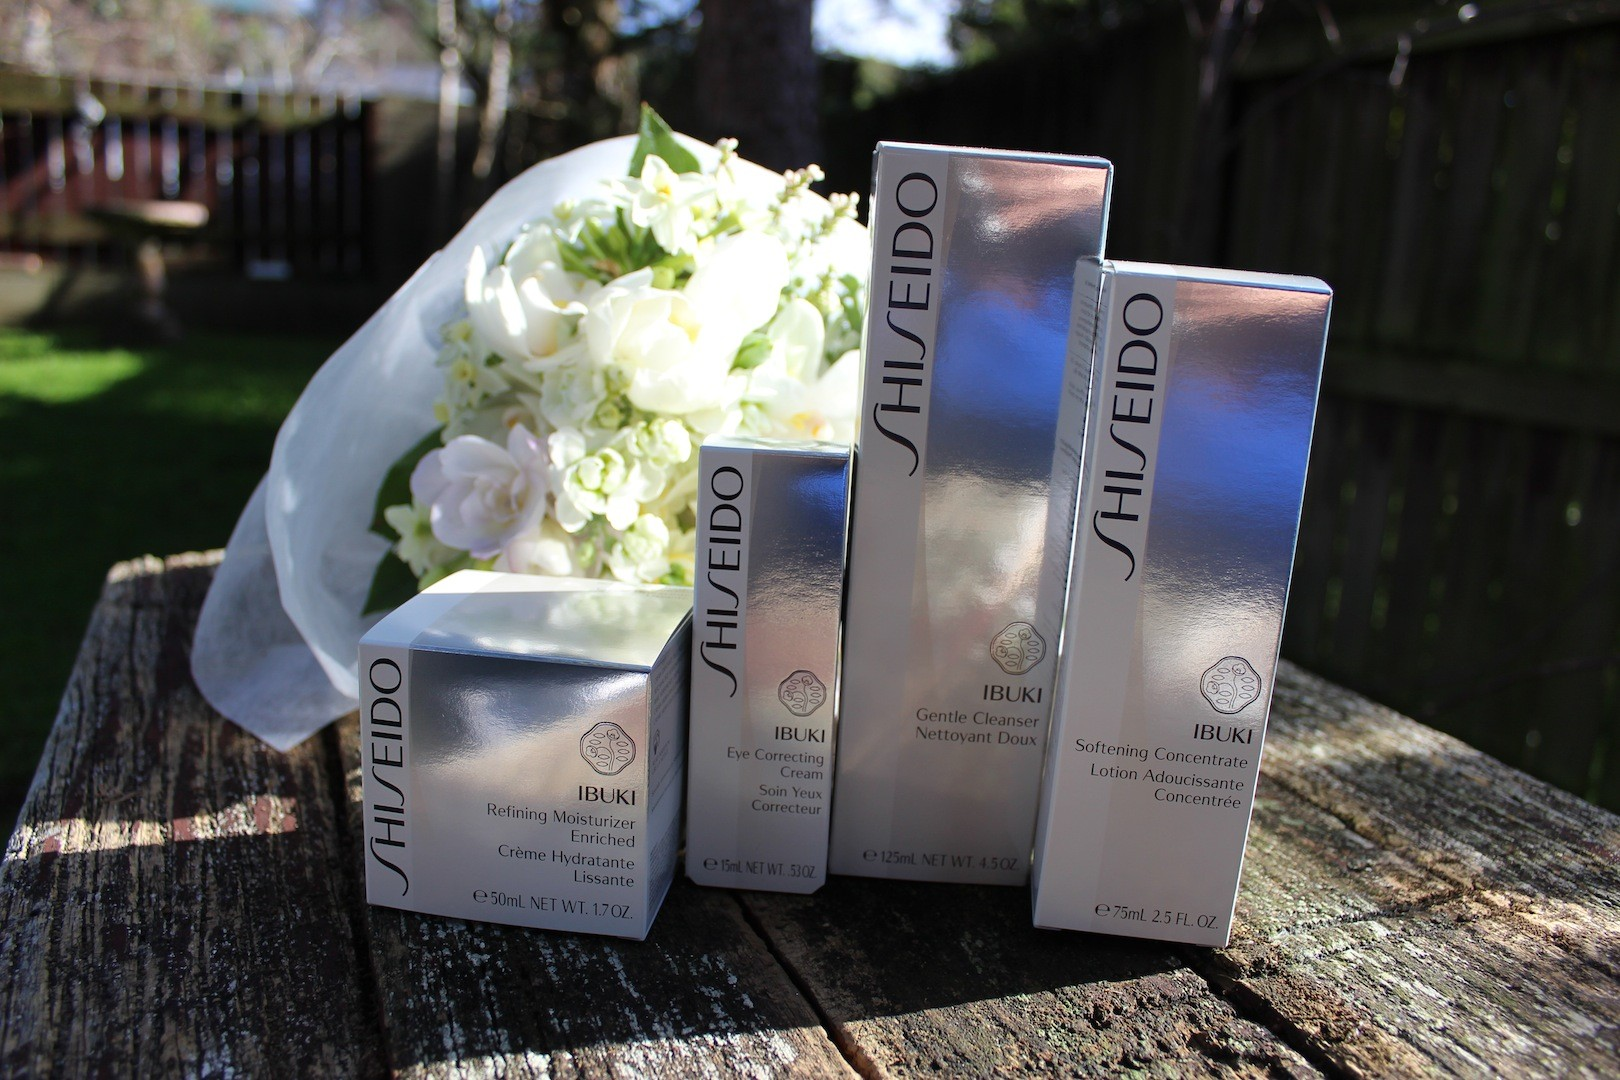 Shiseido, IBUKI, skincare, cosmetics, makeup, hilton, victoria hannan, beauty blog nz, beauty media nz, style blog nz, fashion blog nz, gurlinterrupted, angie fredatovich